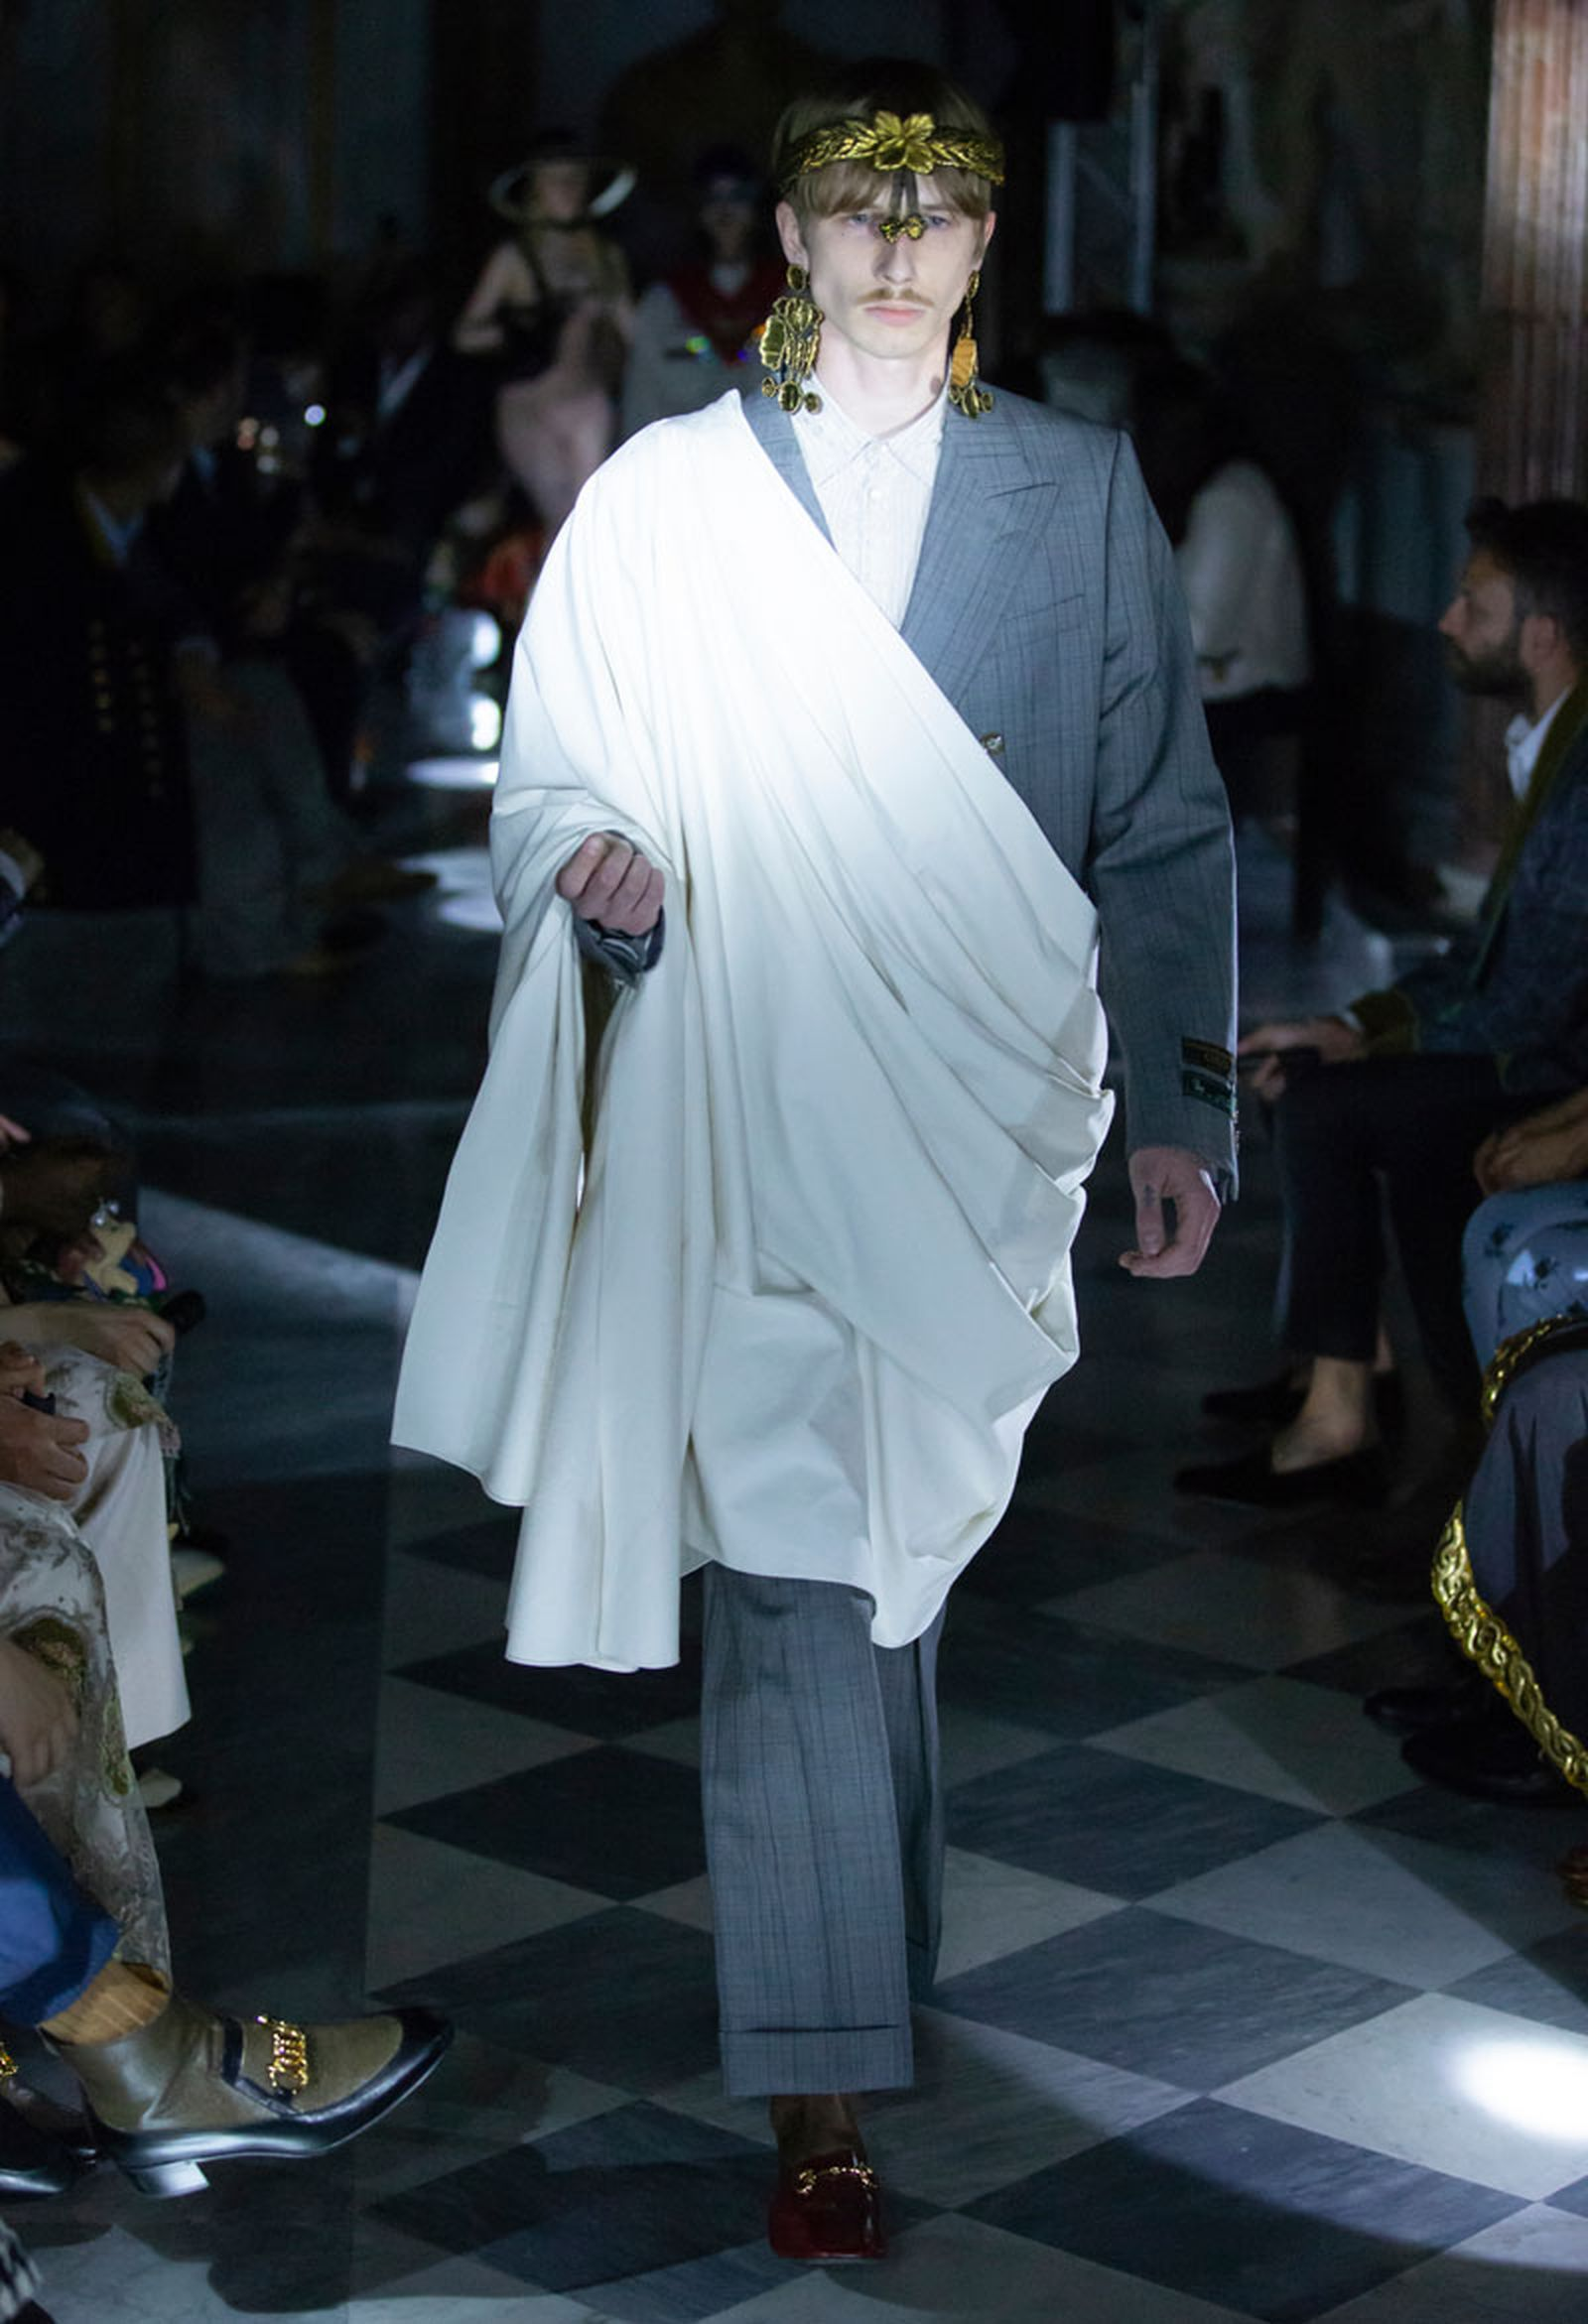 64gucci cruise 2020 runway Alessandro Michele asap rocky harry styles